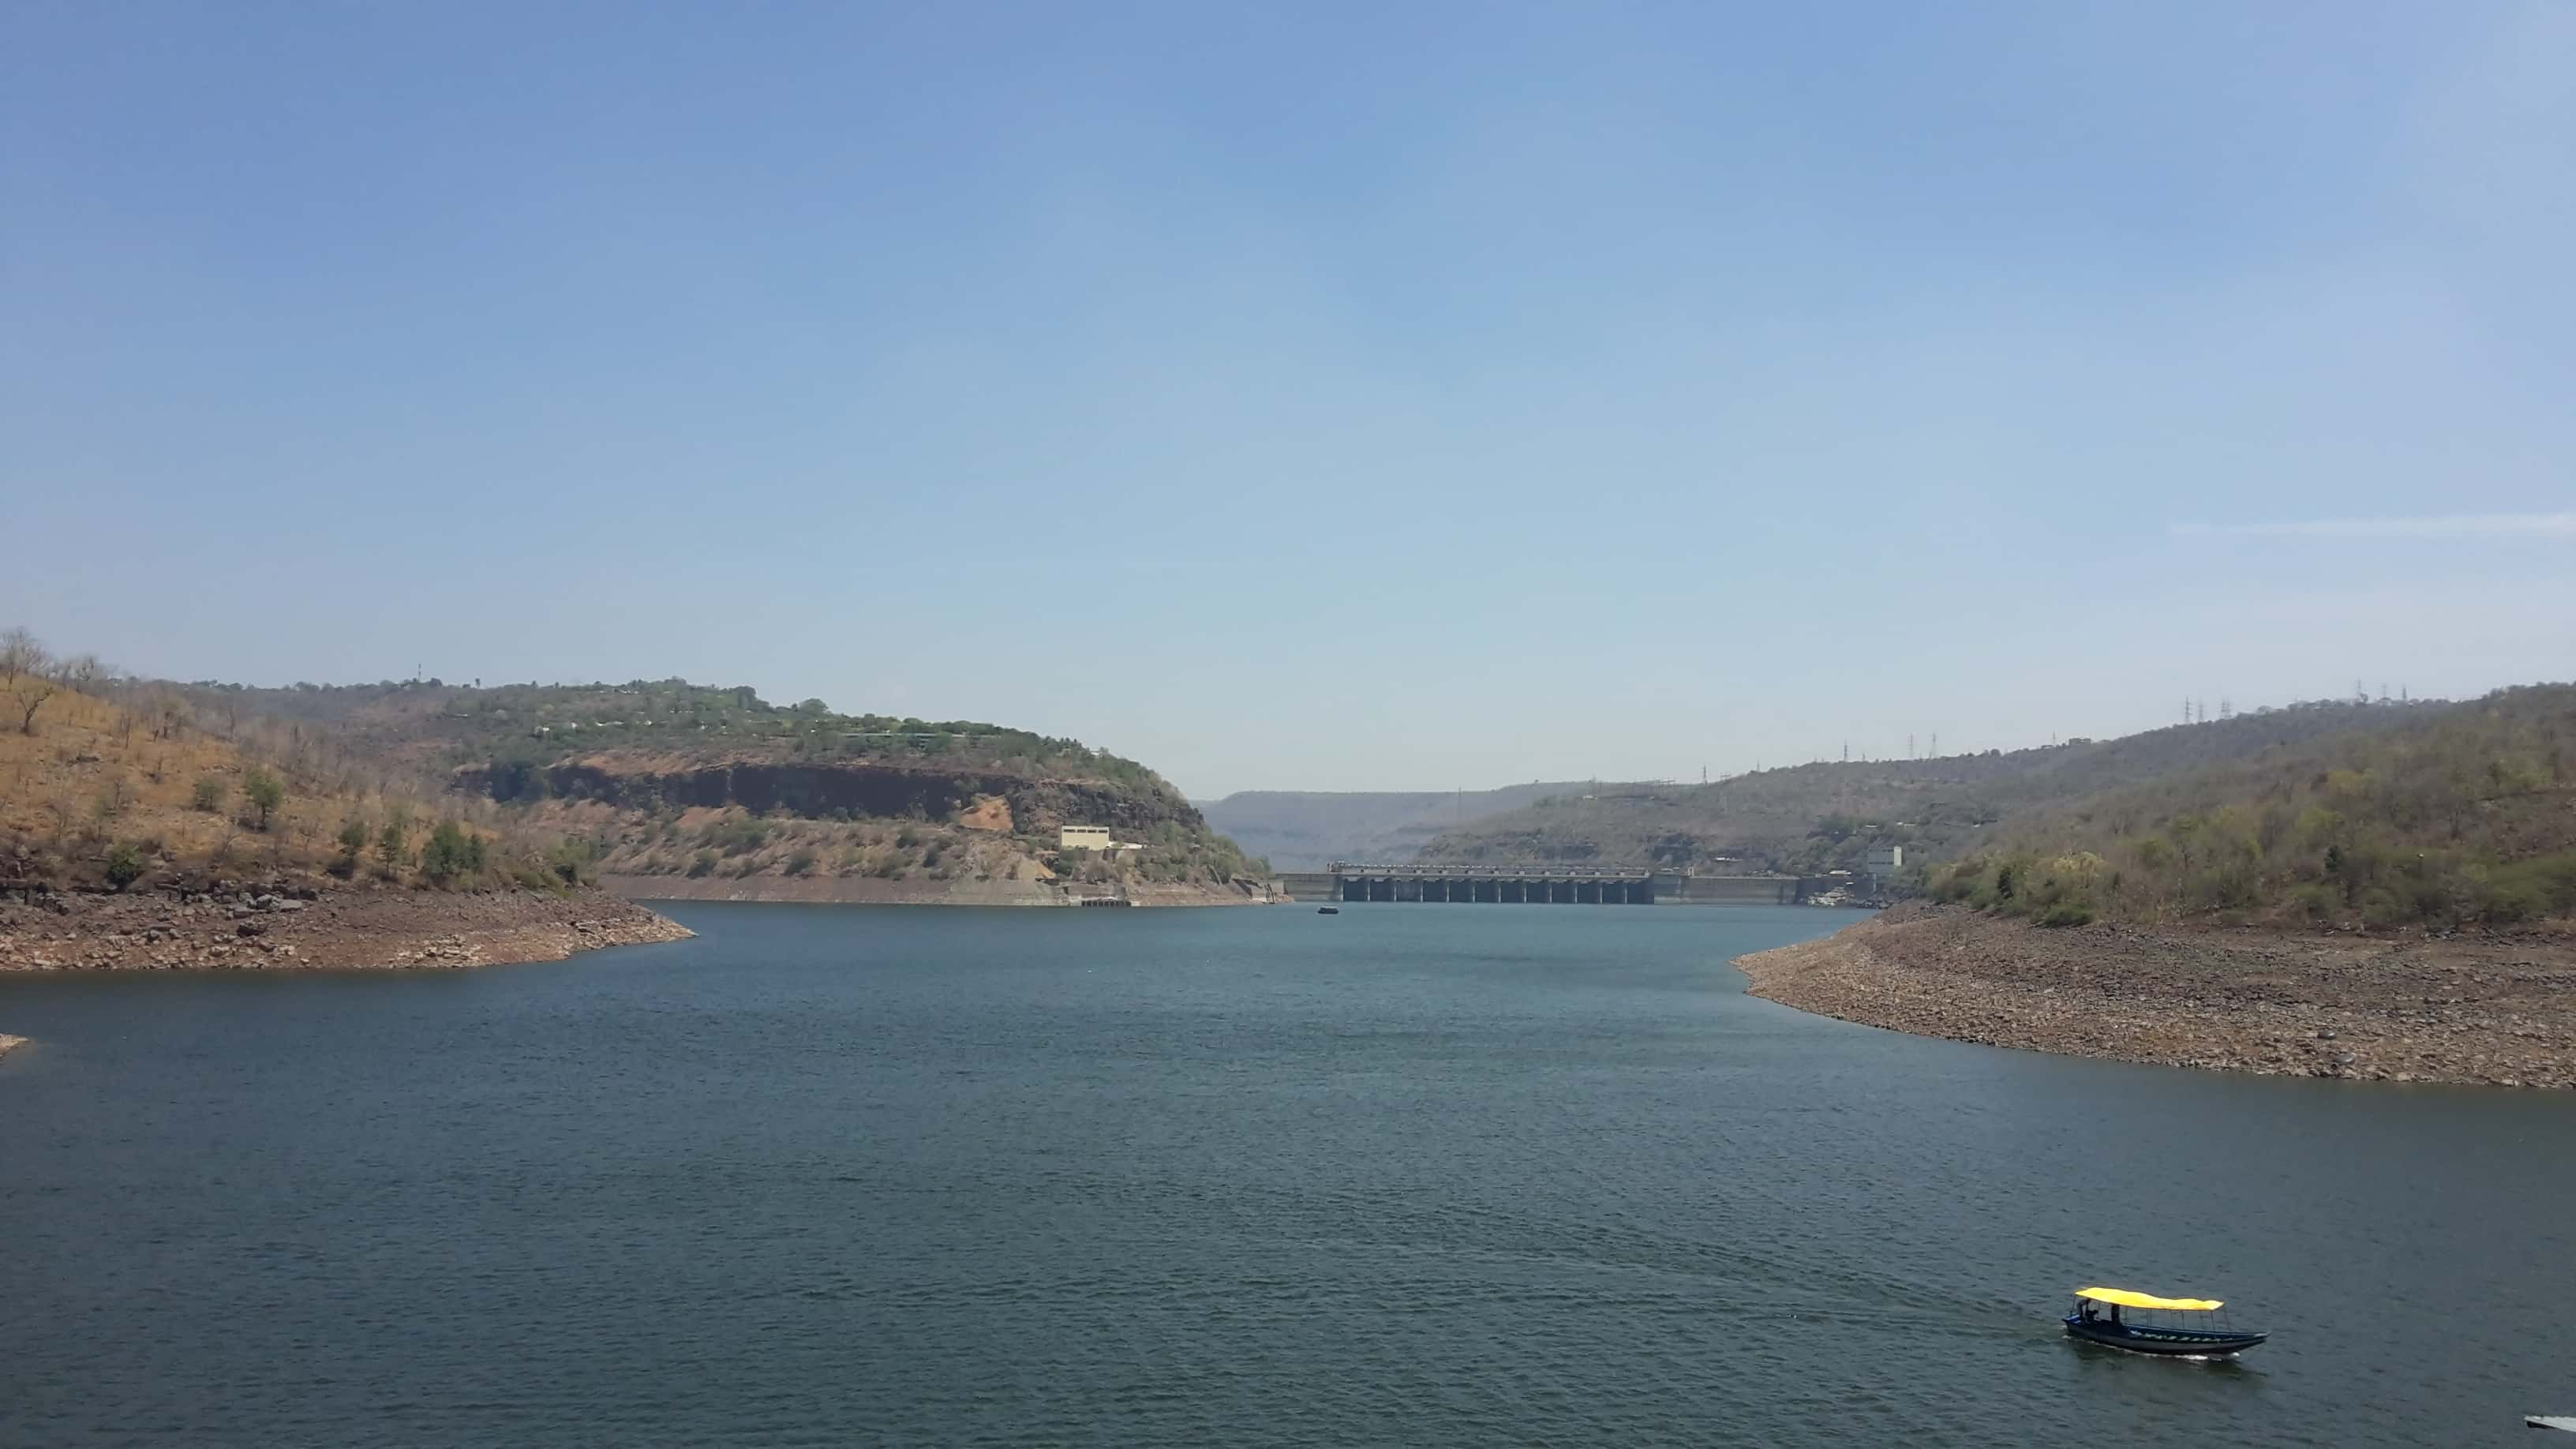 A yellow boat passing by near Srisailam Tiger Reserve area